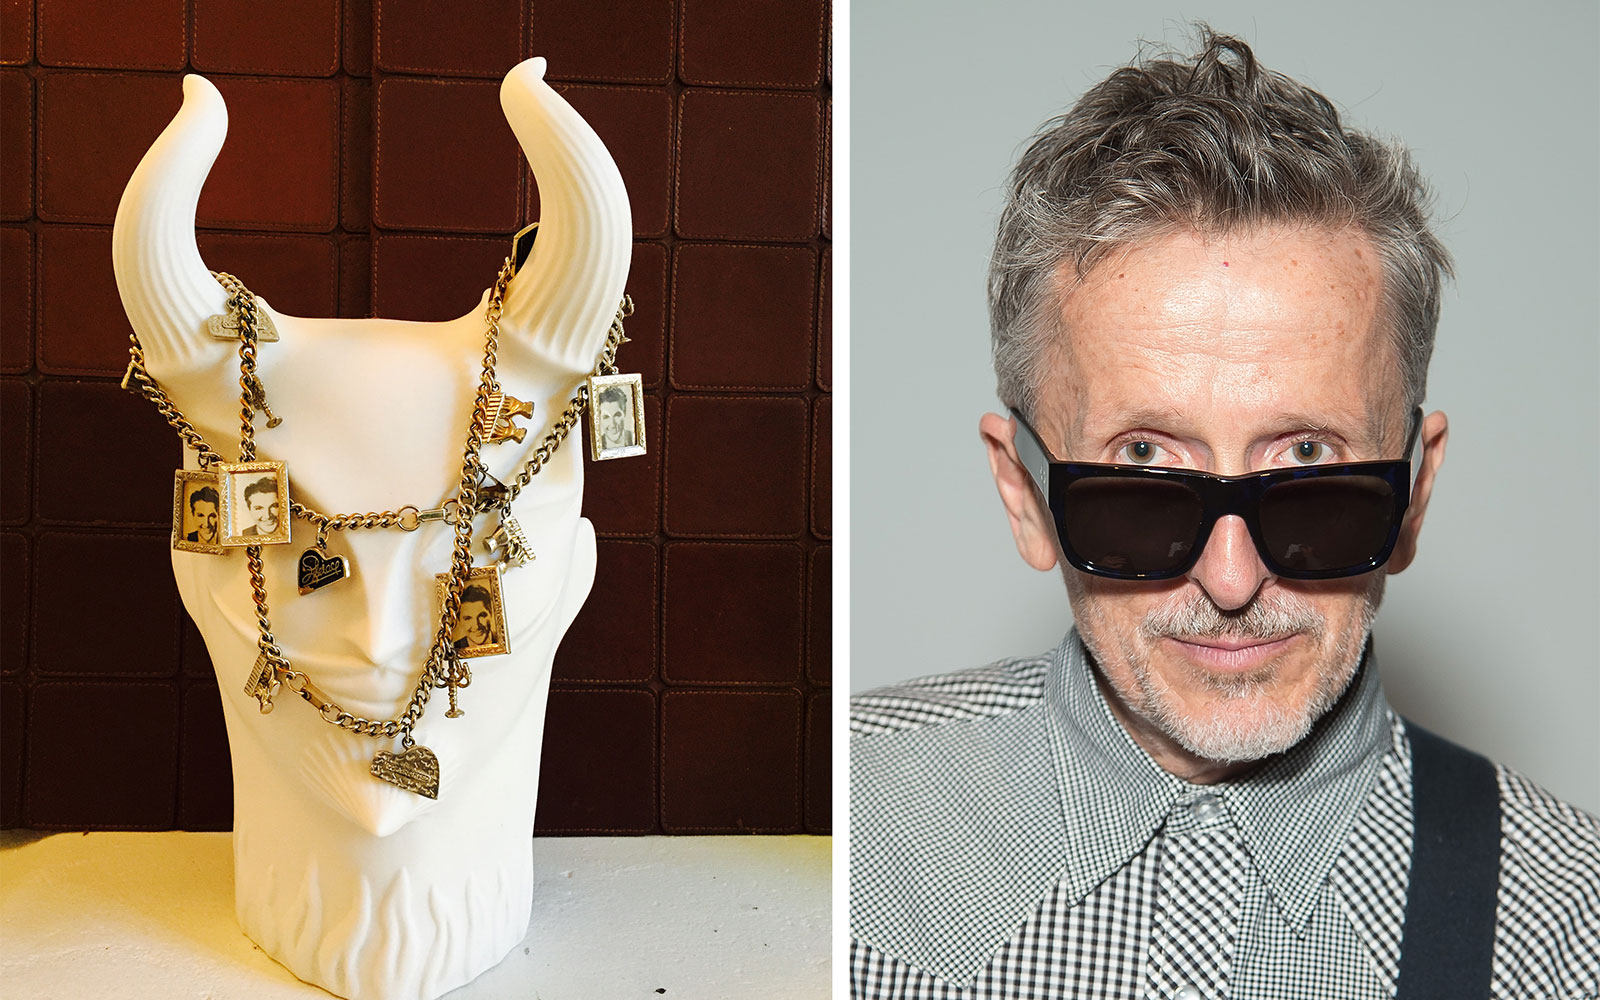 Simon Doonan on His Treasured Liberace Necklace From Las Vegas